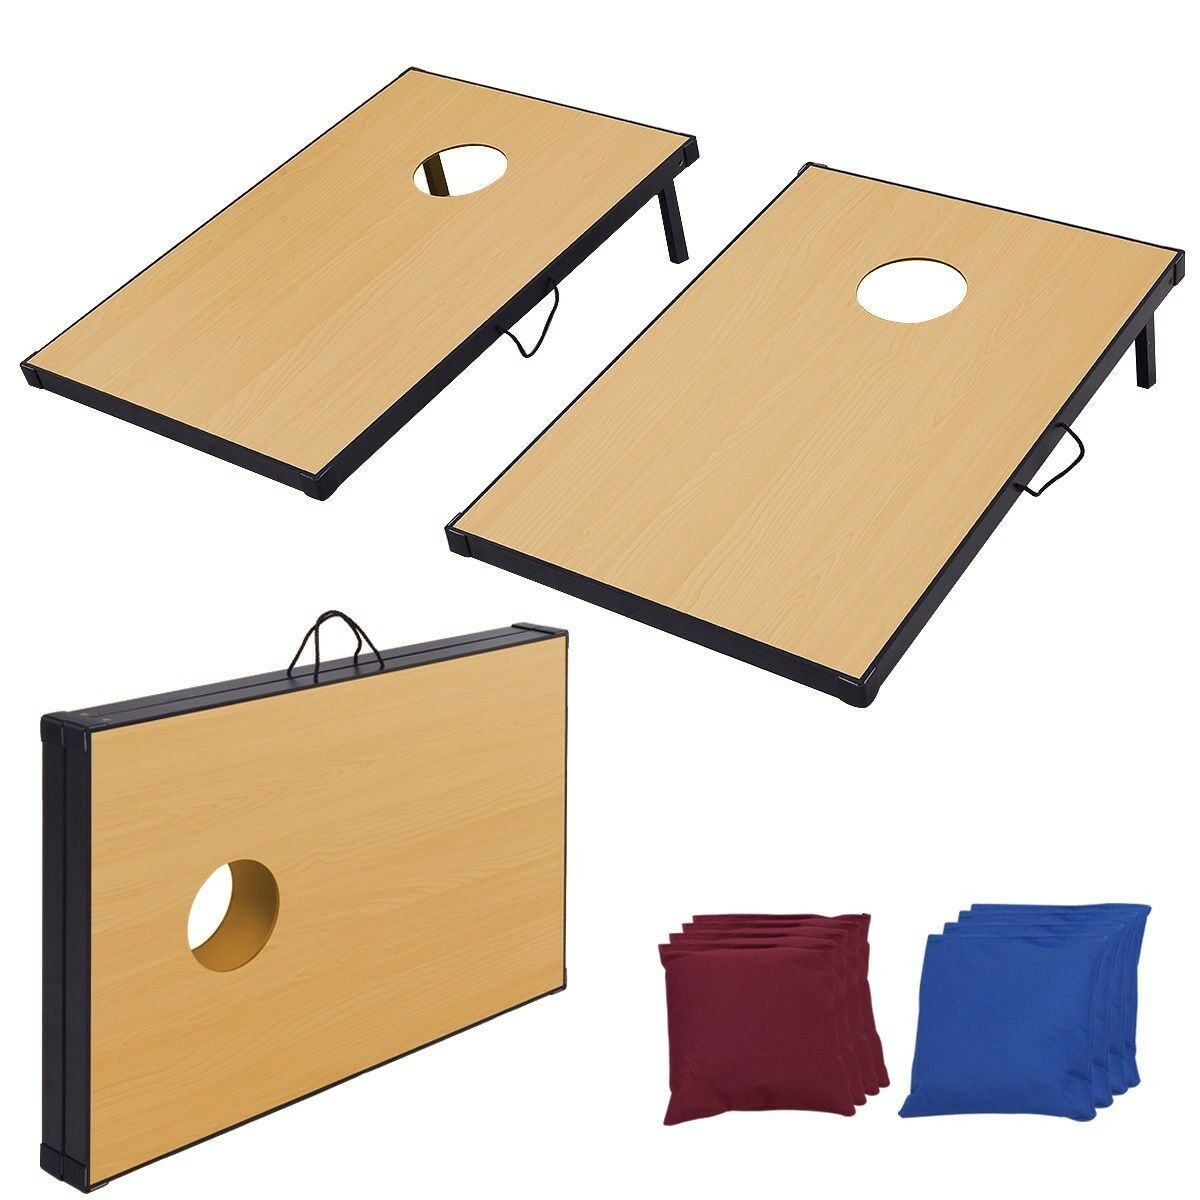 35  Foldable  Wood Bean Bag Toss Cornhole Game Set of 2 Boards and 8 Beanbags  sale with high discount